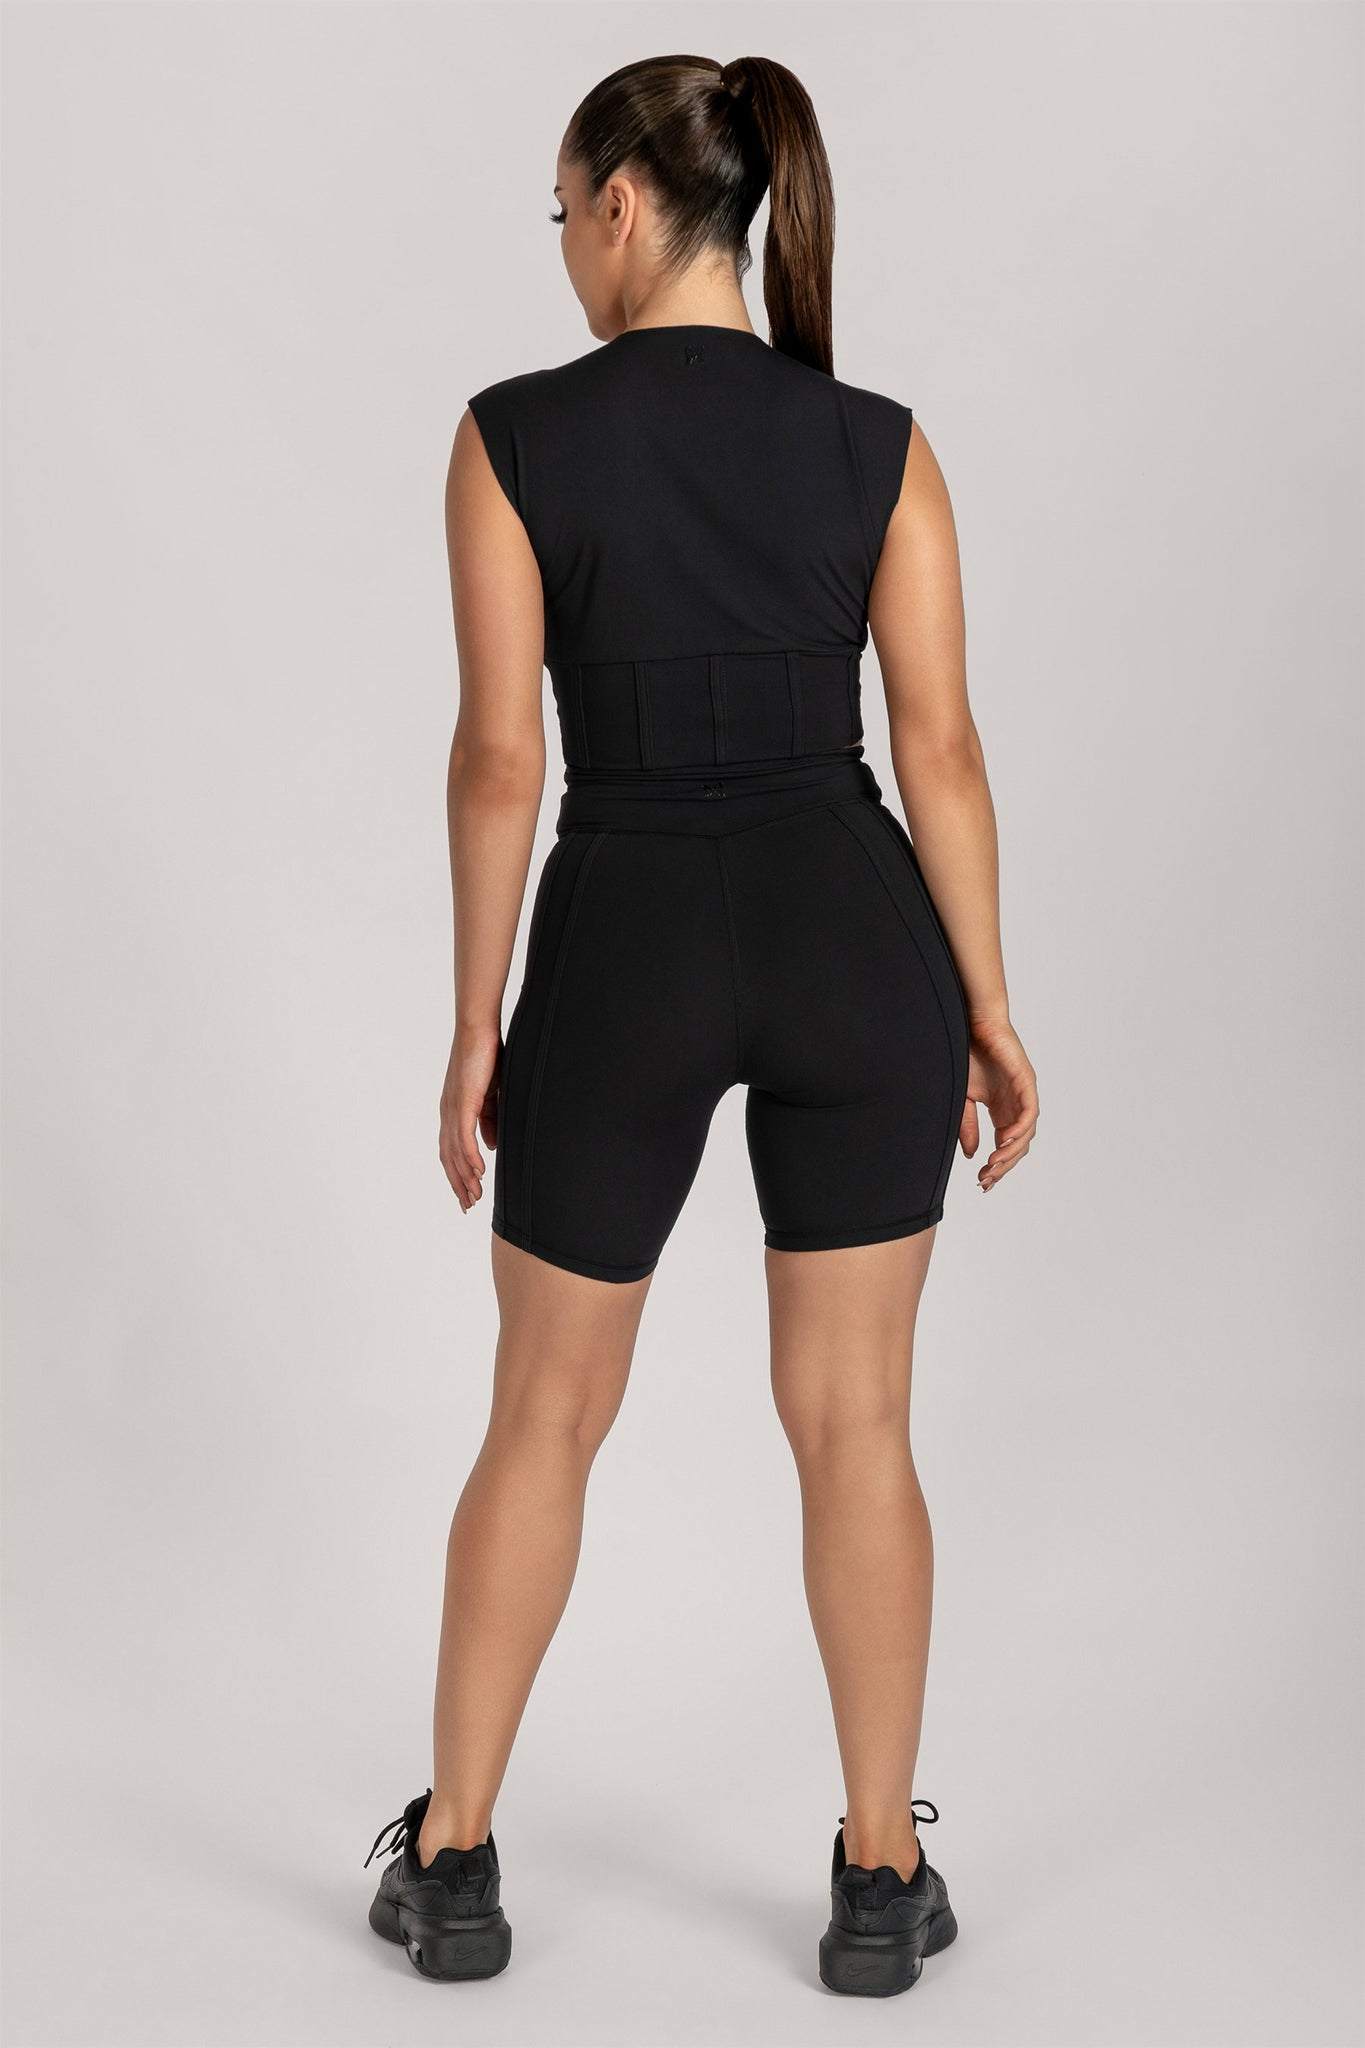 Hera Panelled Bike Shorts - Black - MESHKI